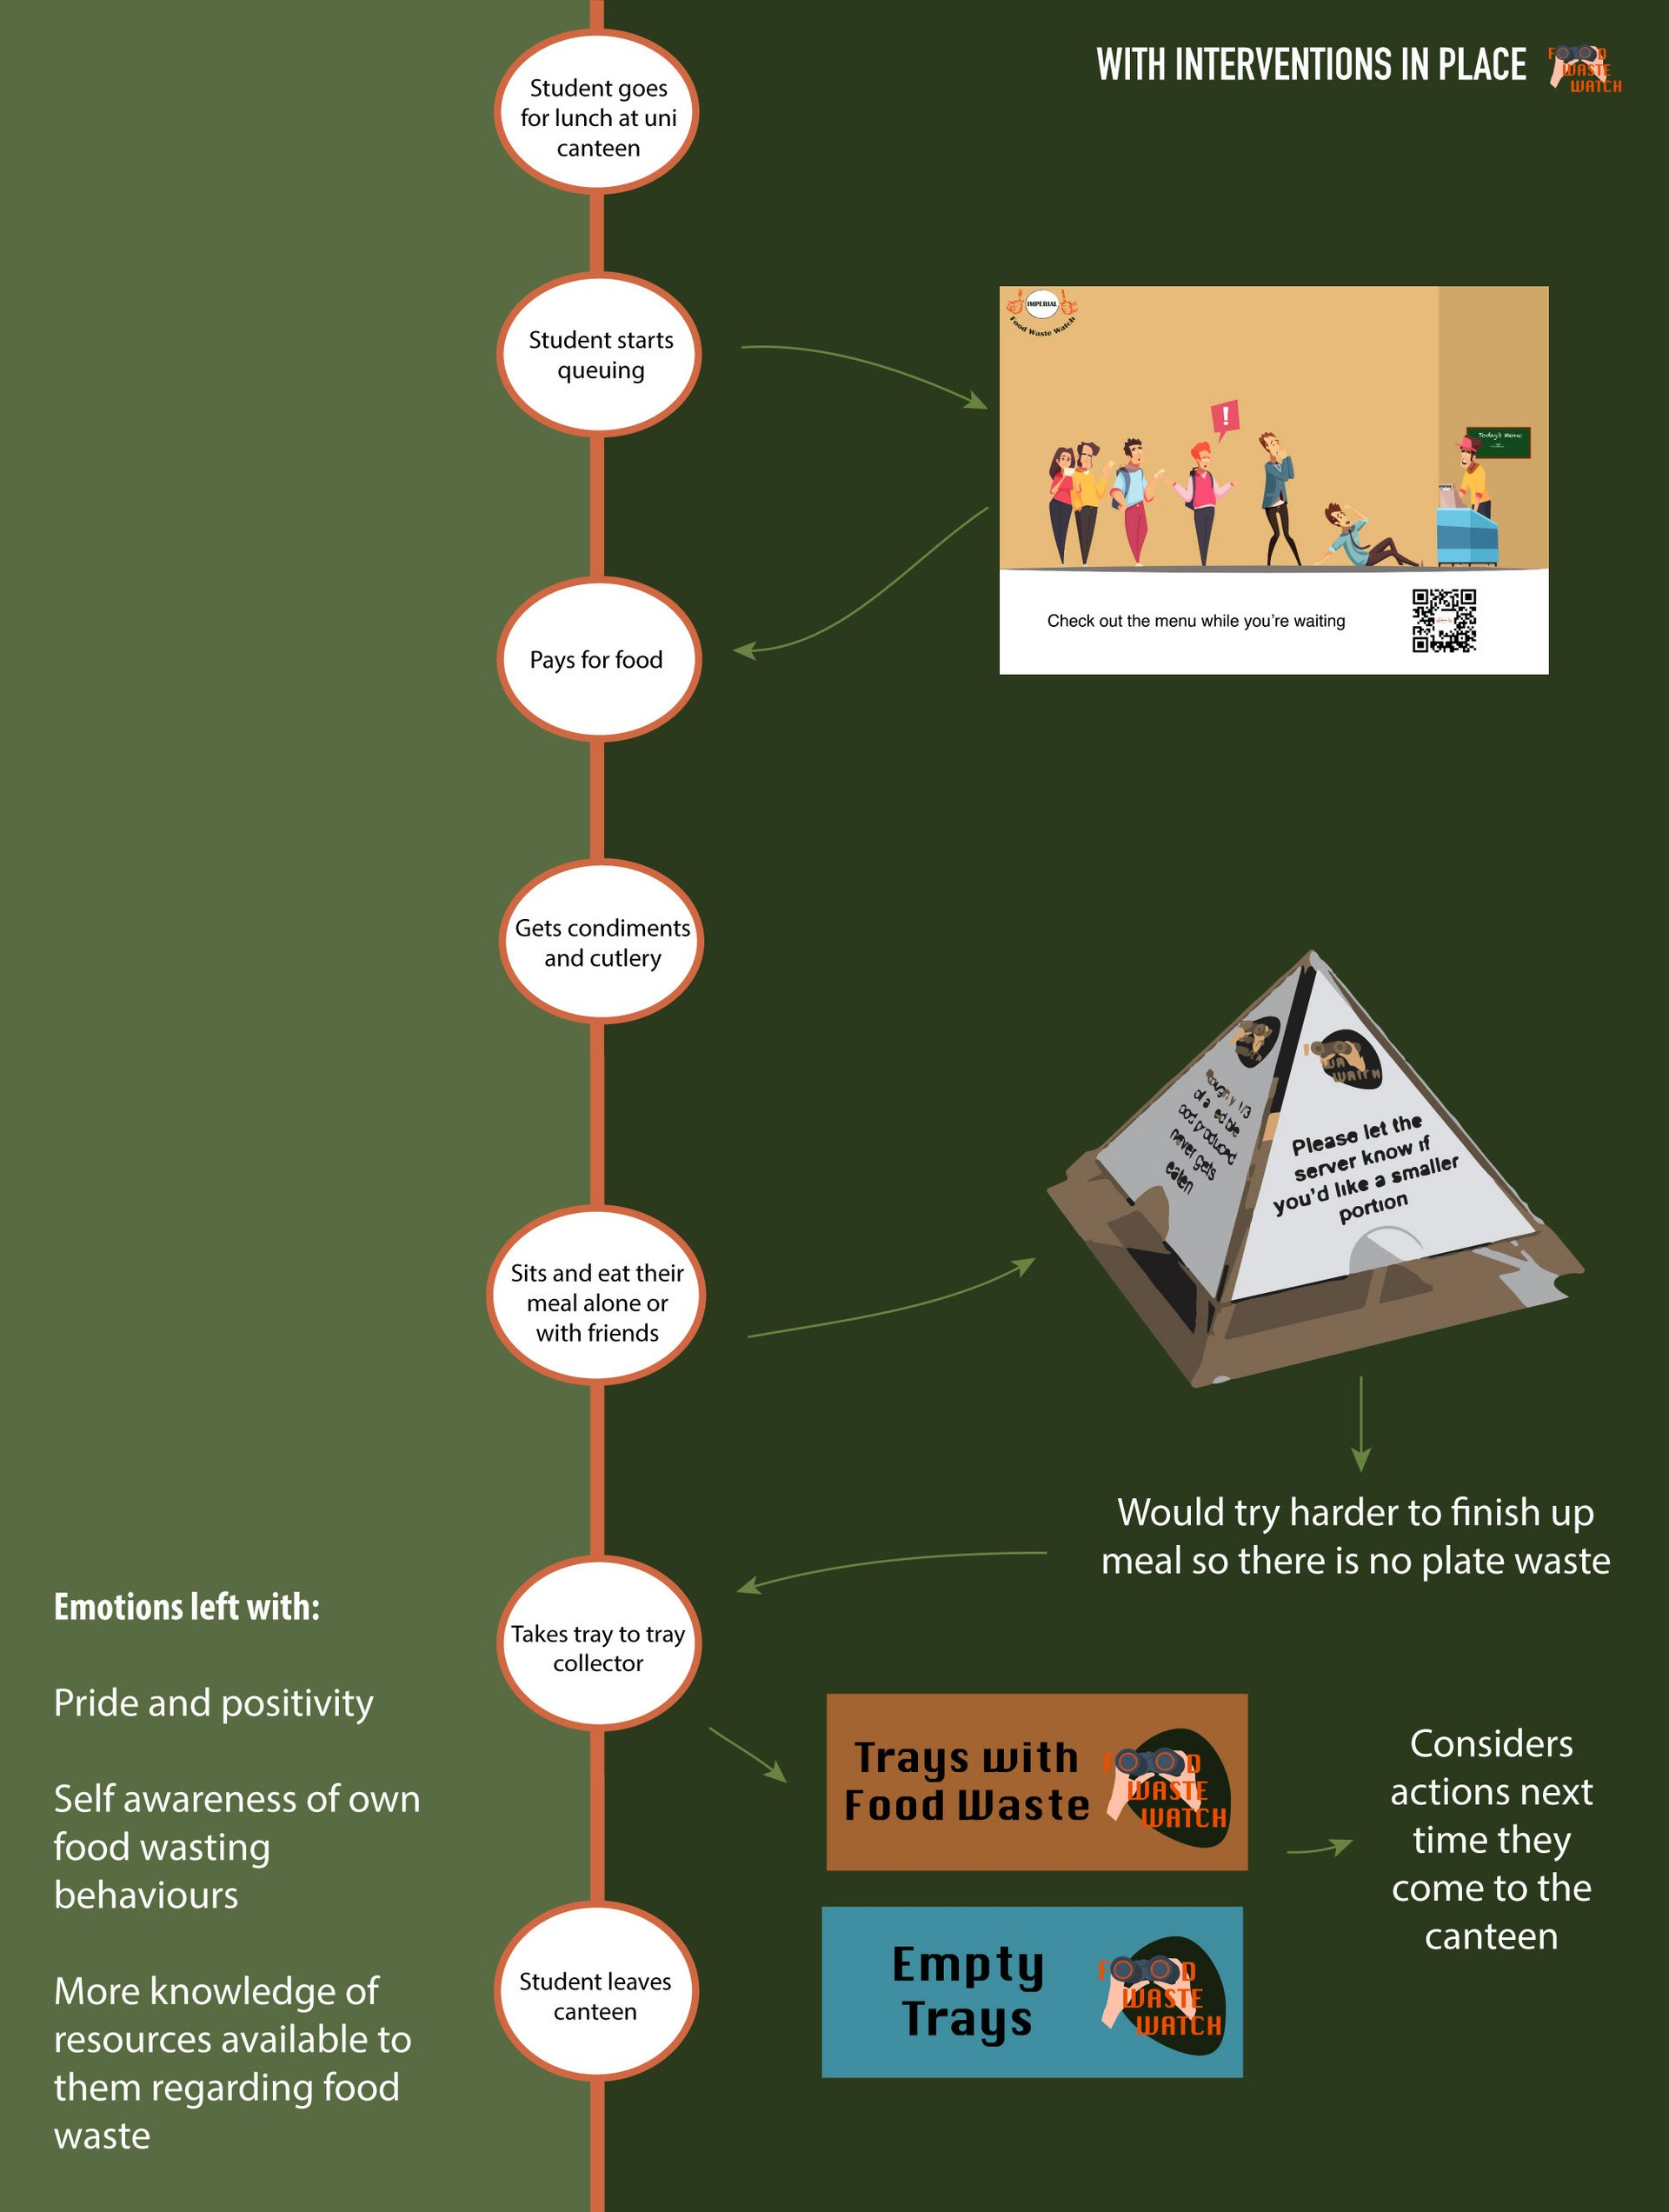 Interventions User Journey Map